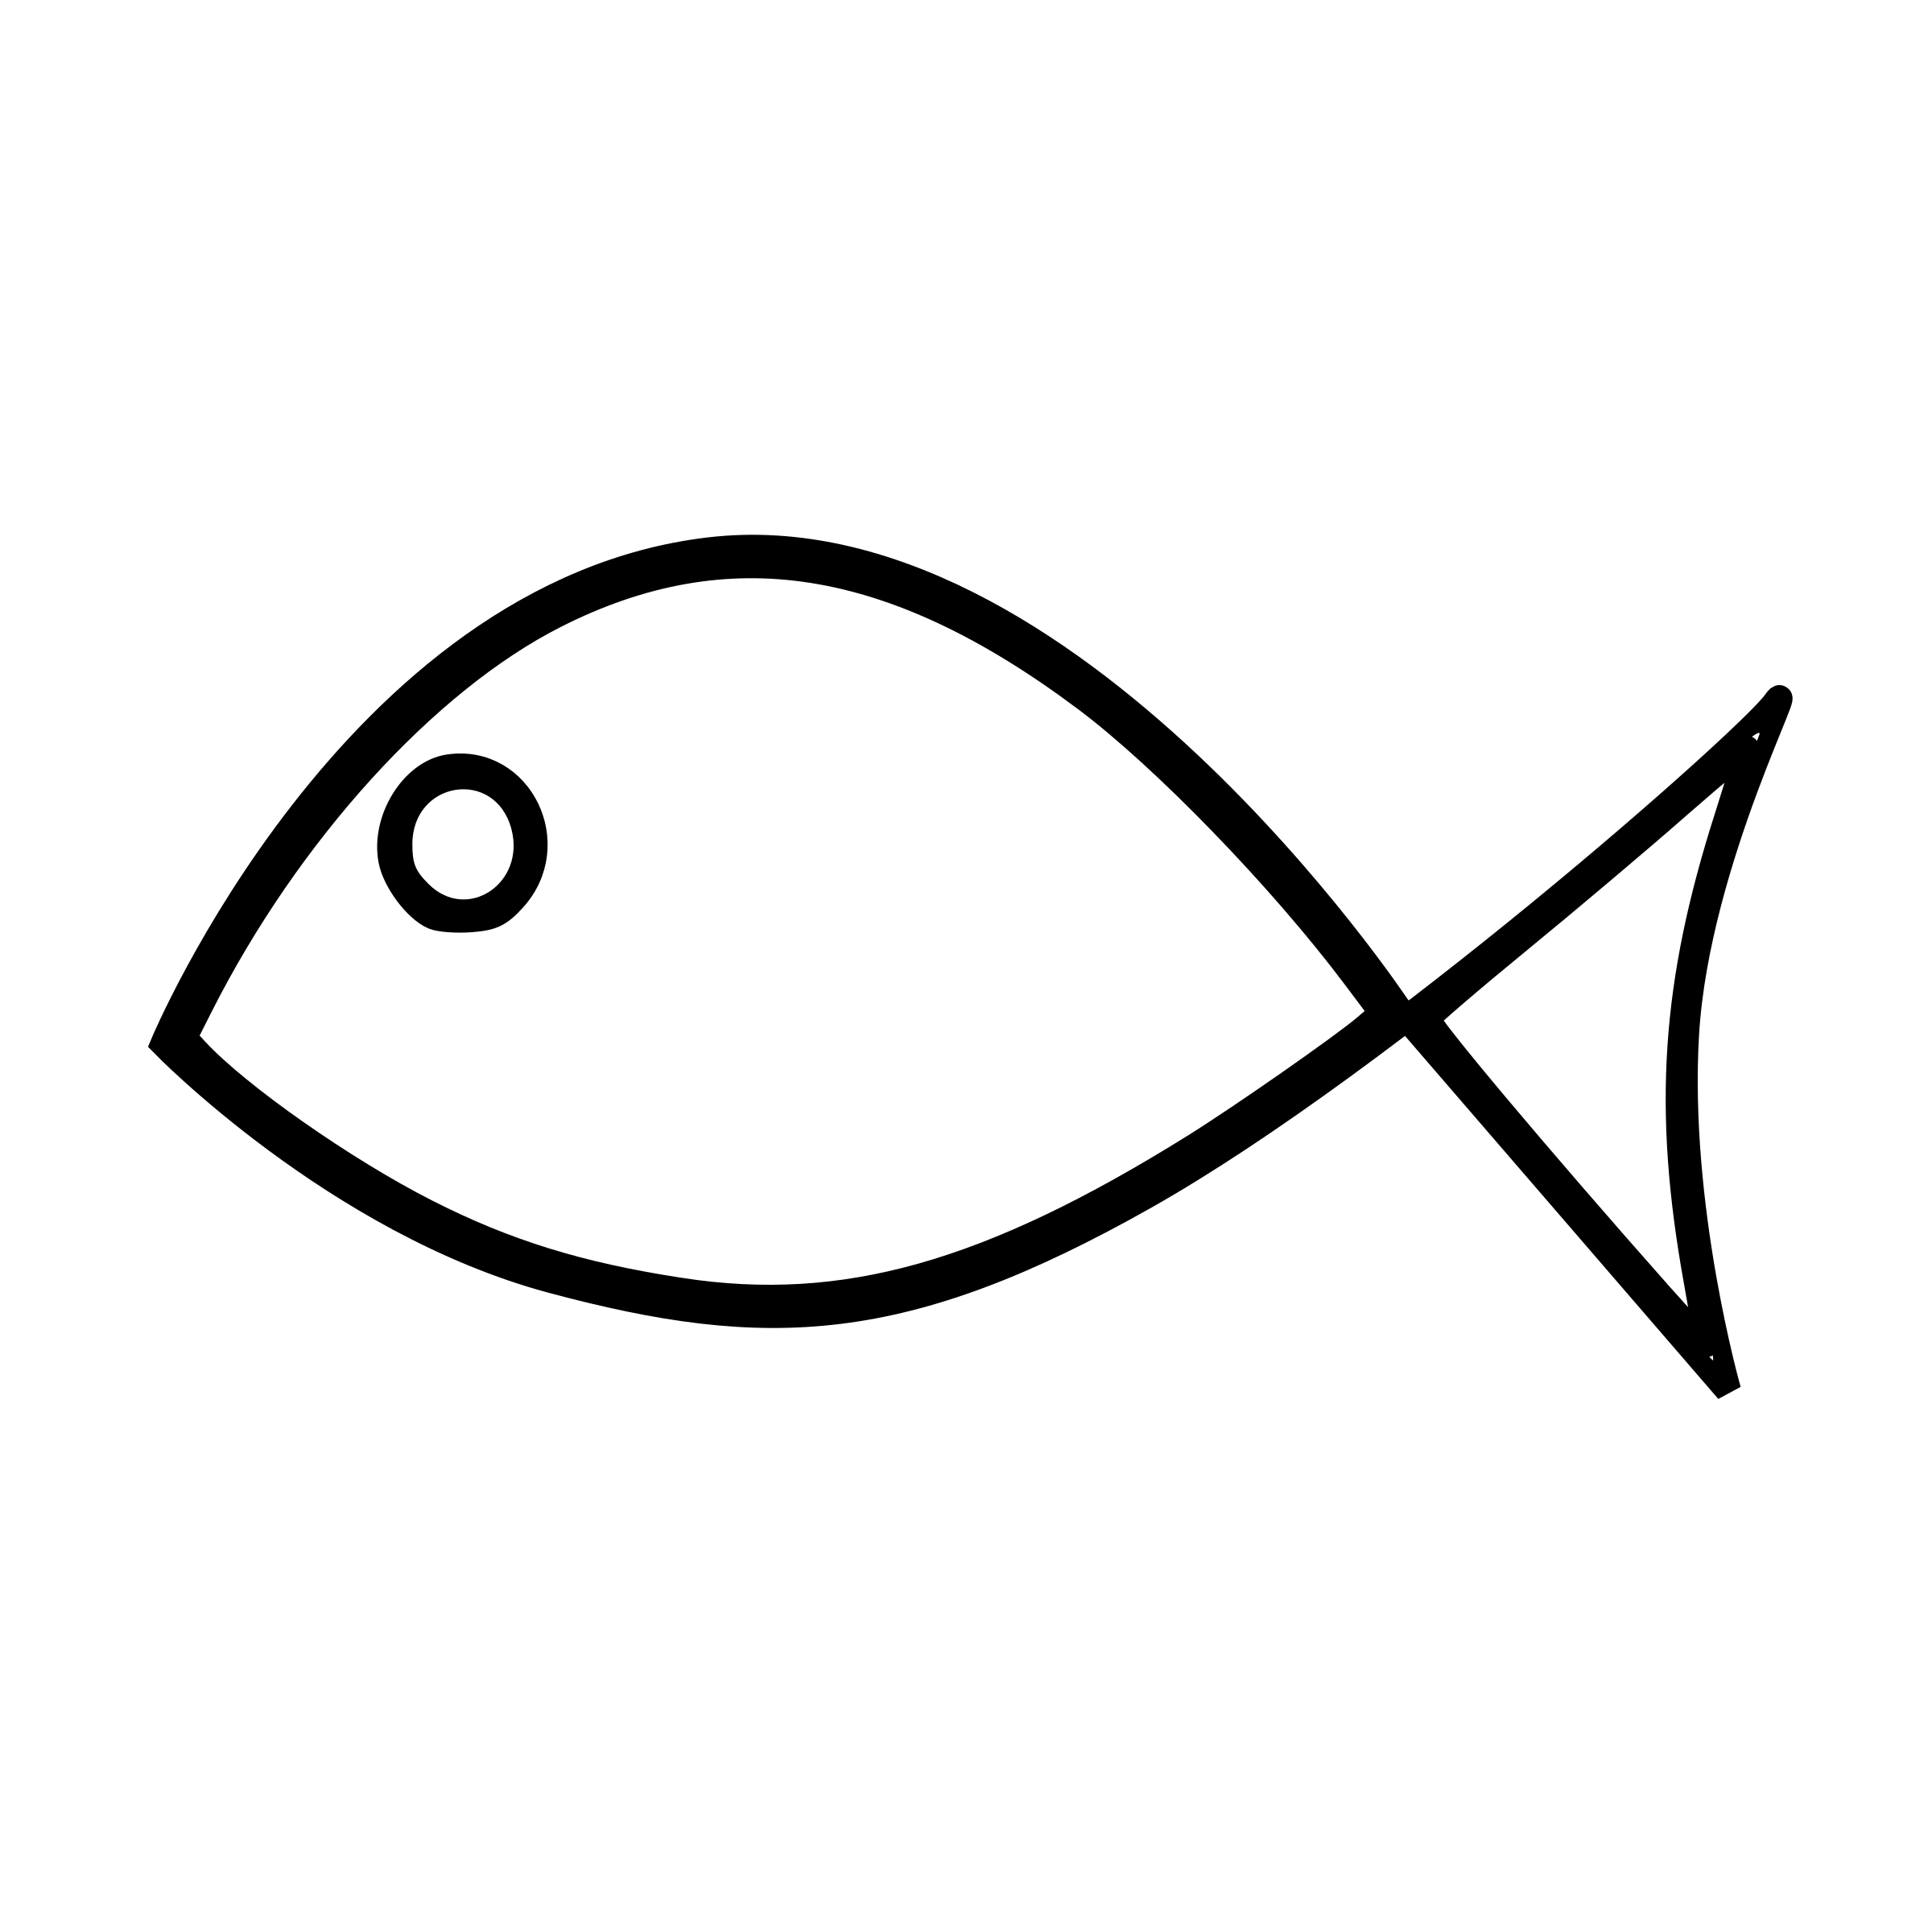 Fish sign clipart jpg black and white Clipart - fish jpg black and white